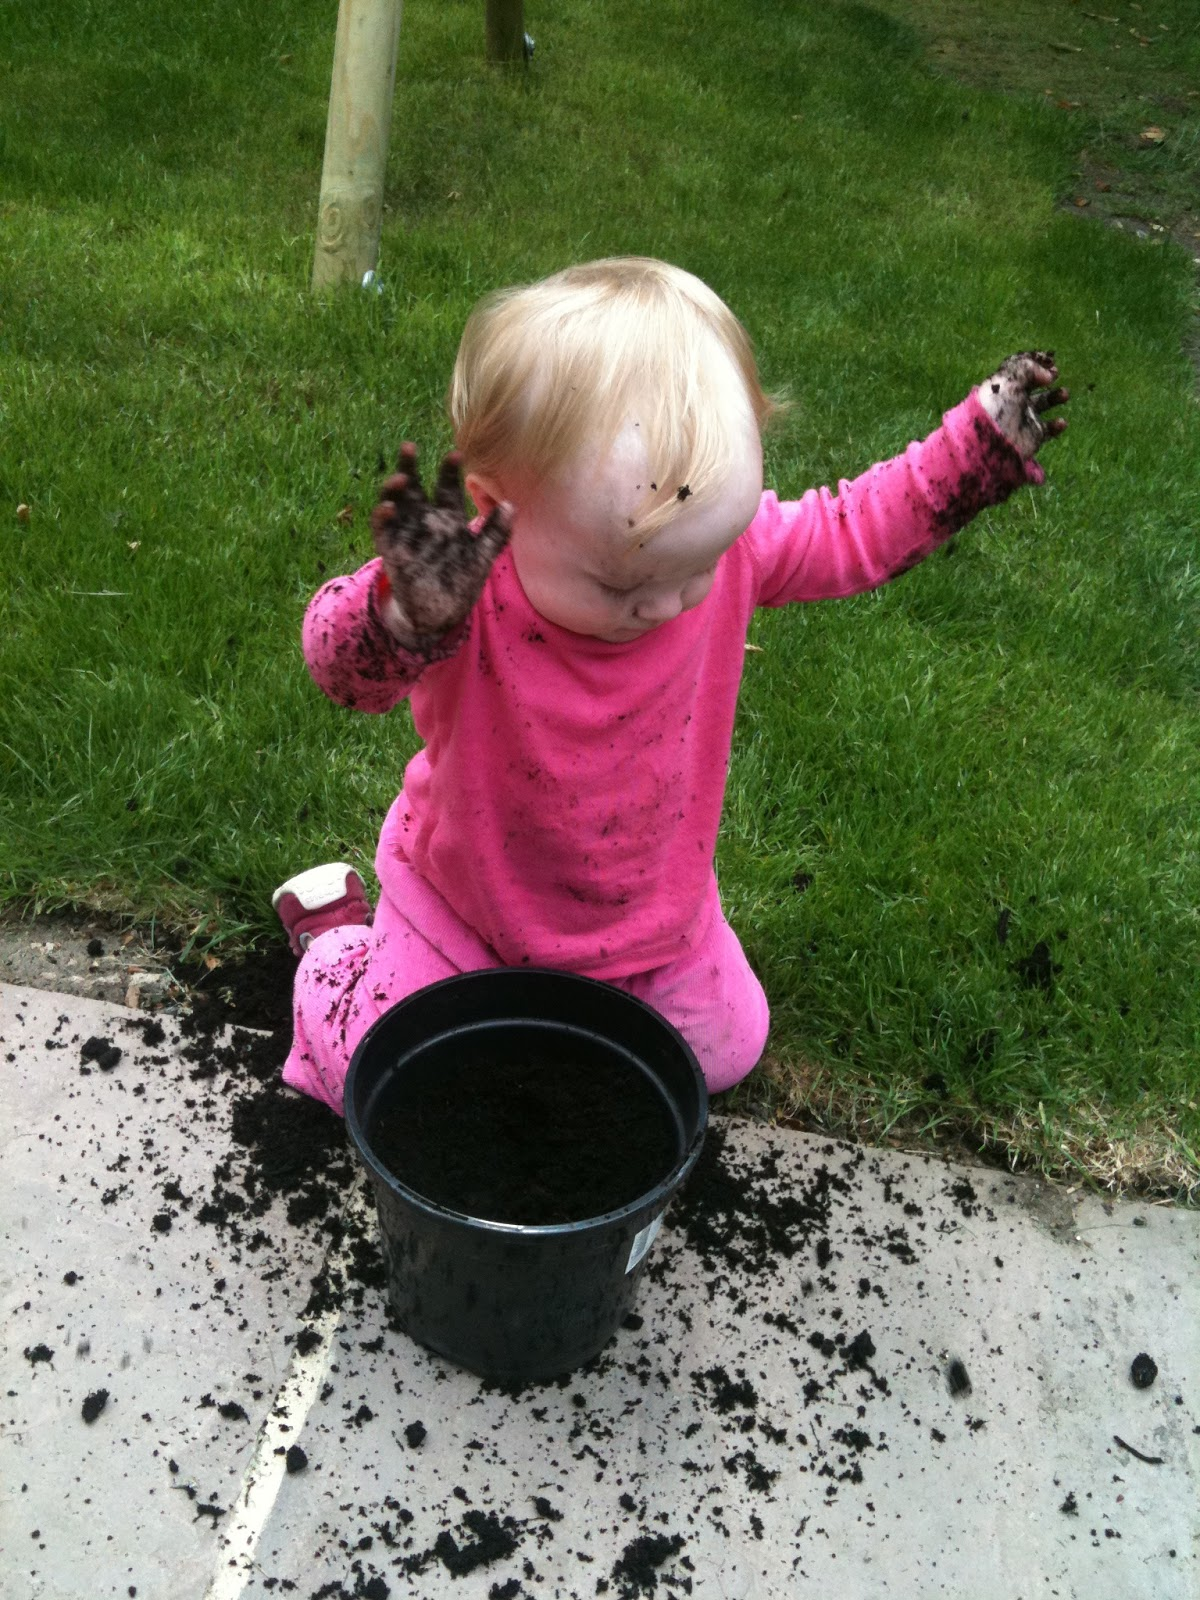 u-ni-k blog: #NGW - our favourite gardening tips!